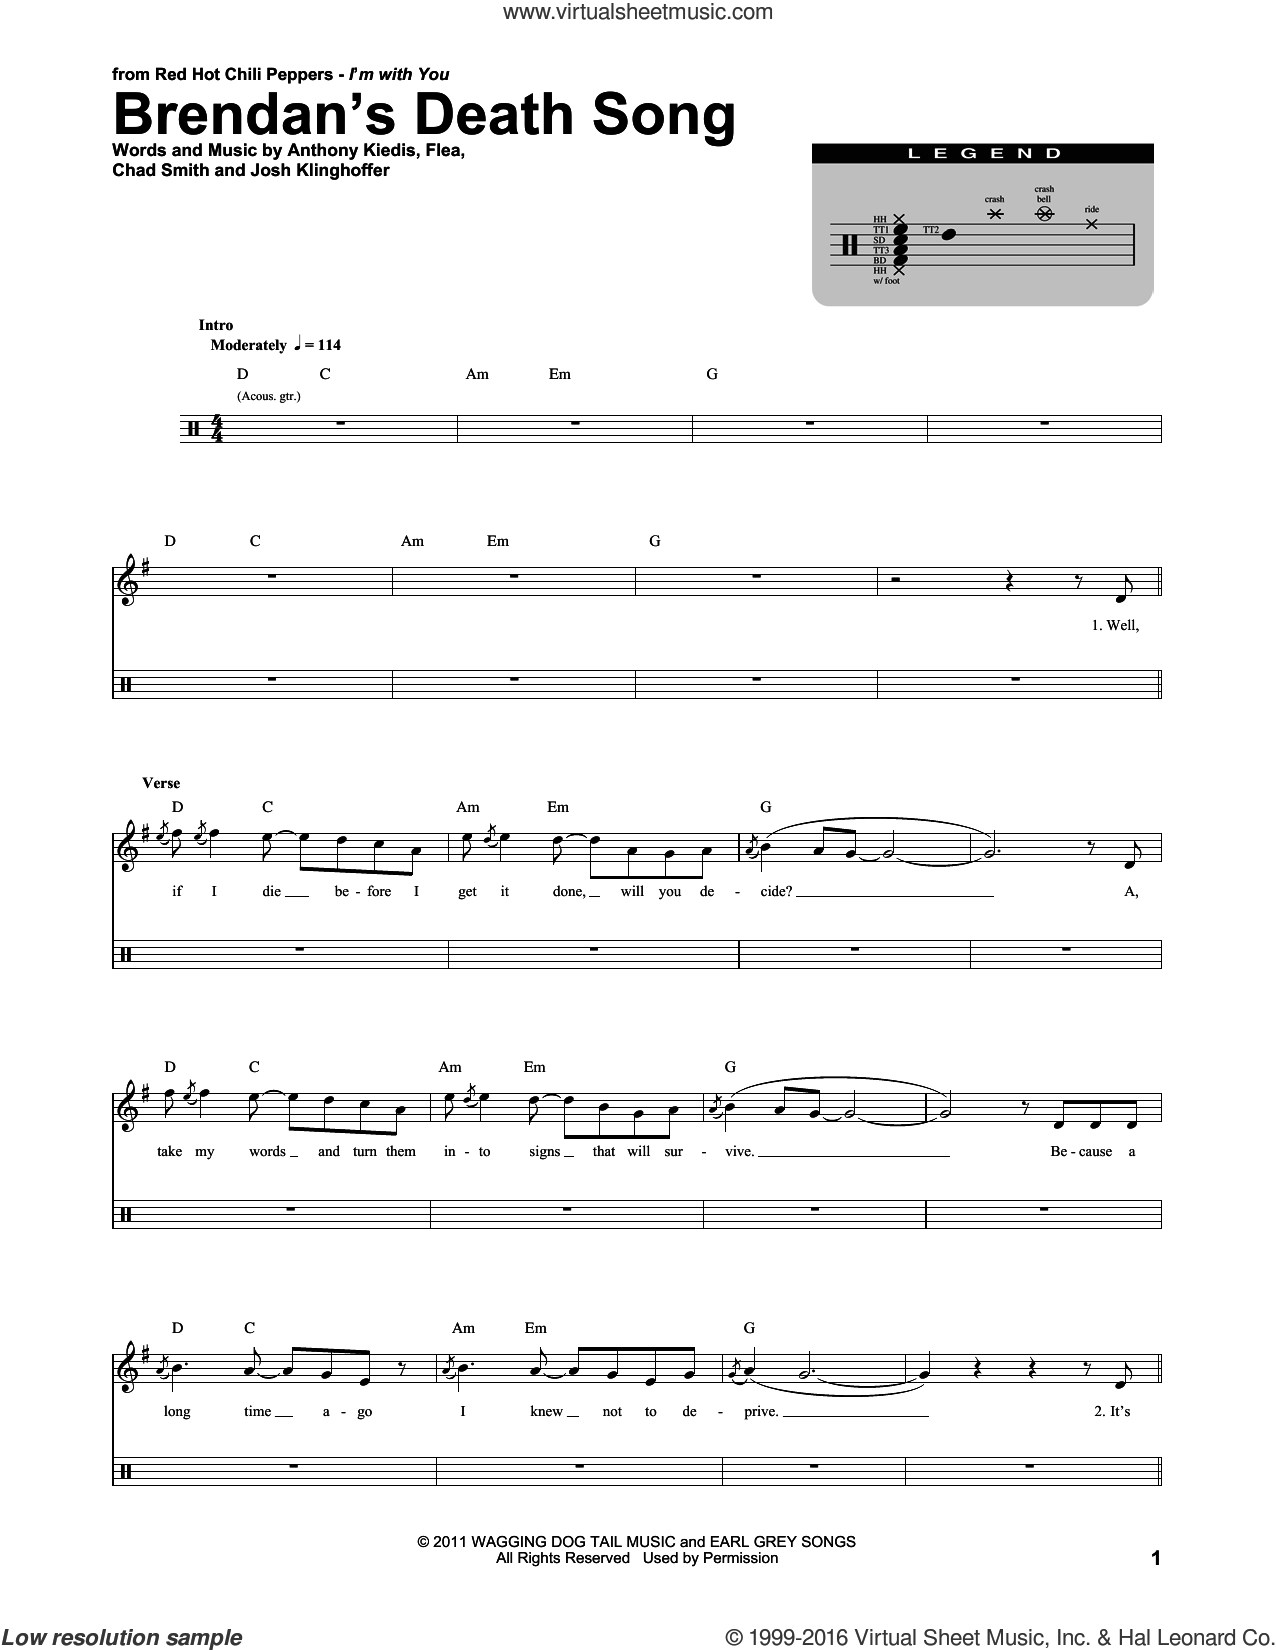 Brendan's Death Song sheet music for drums by Red Hot Chili Peppers. Score Image Preview.